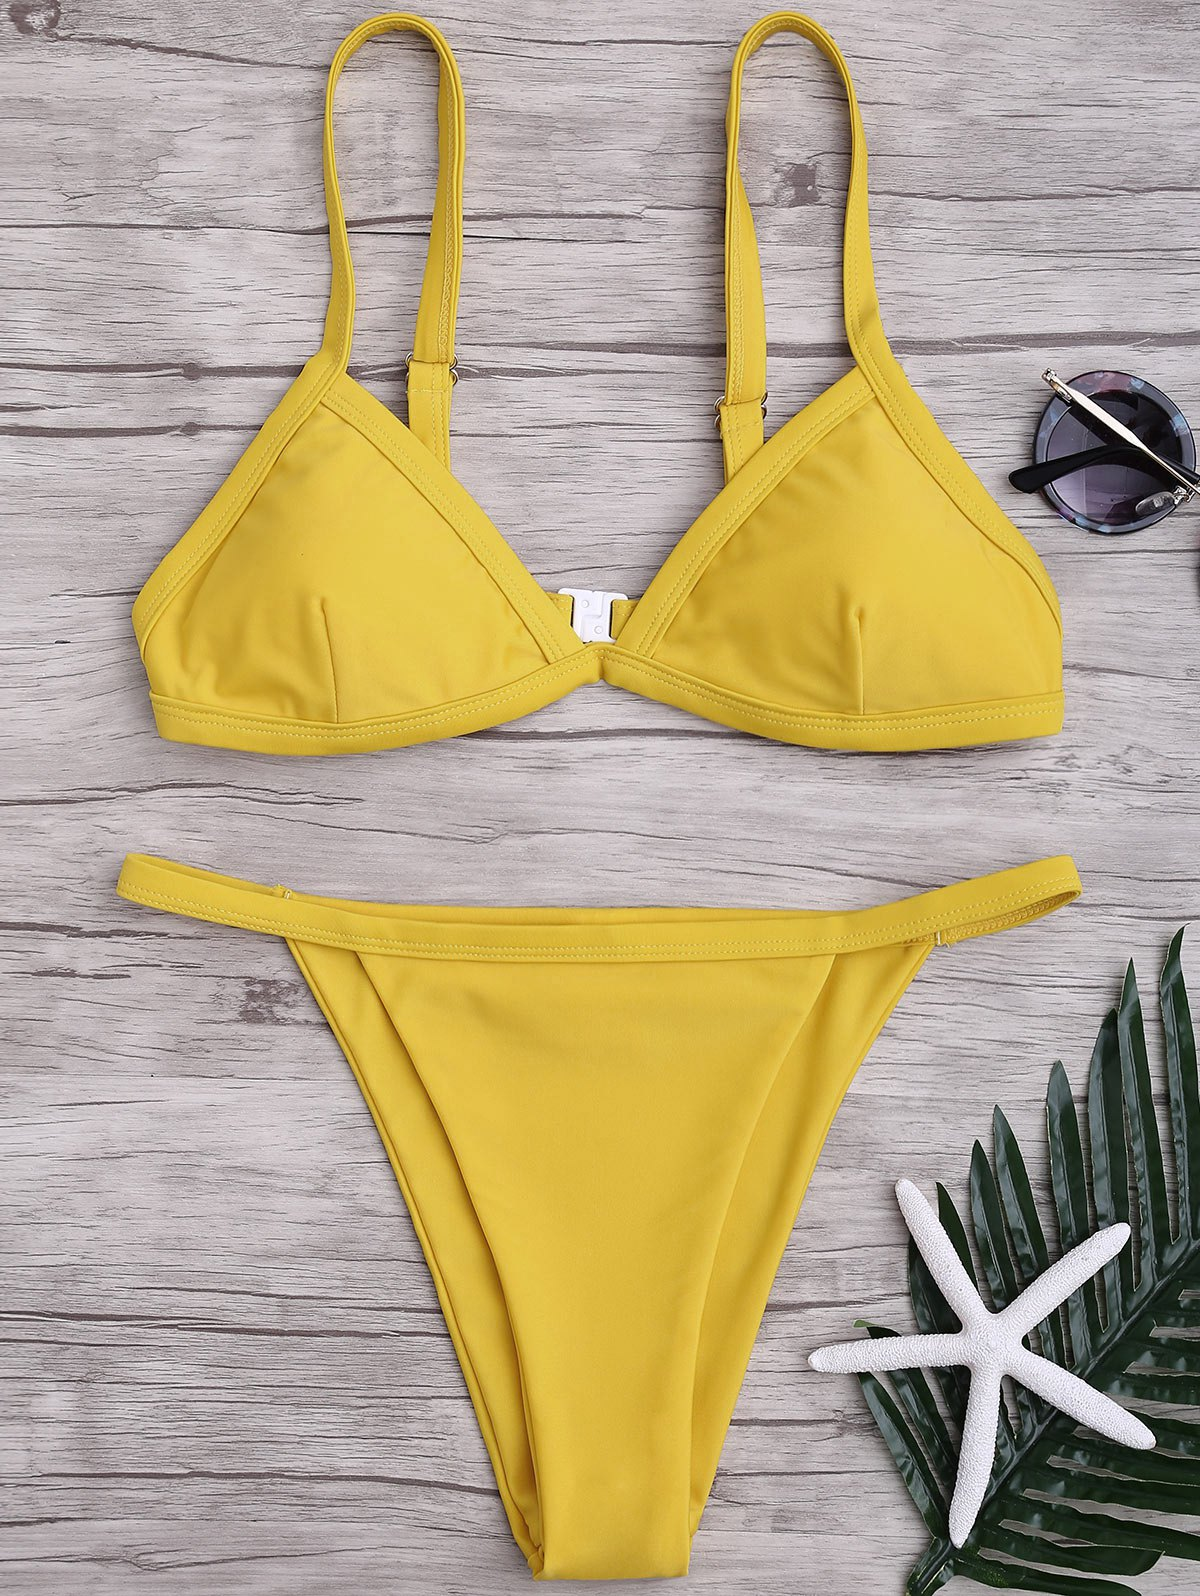 Discount Spaghetti Straps String High Cut Two Piece Swimsuit